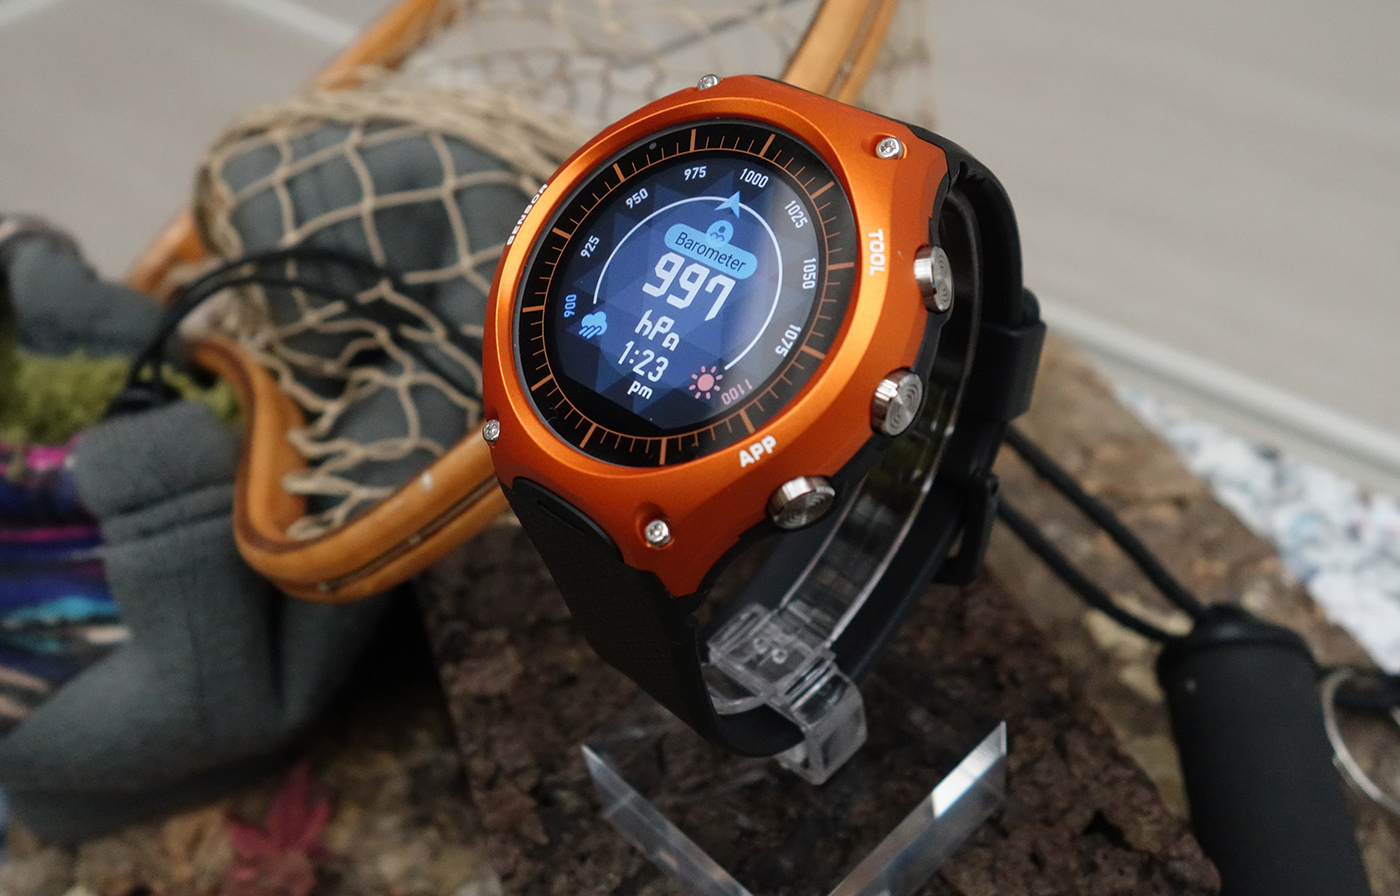 7a08611a13b21 Phone makers and start-ups were the first to attempt the modern smartwatch.  Then